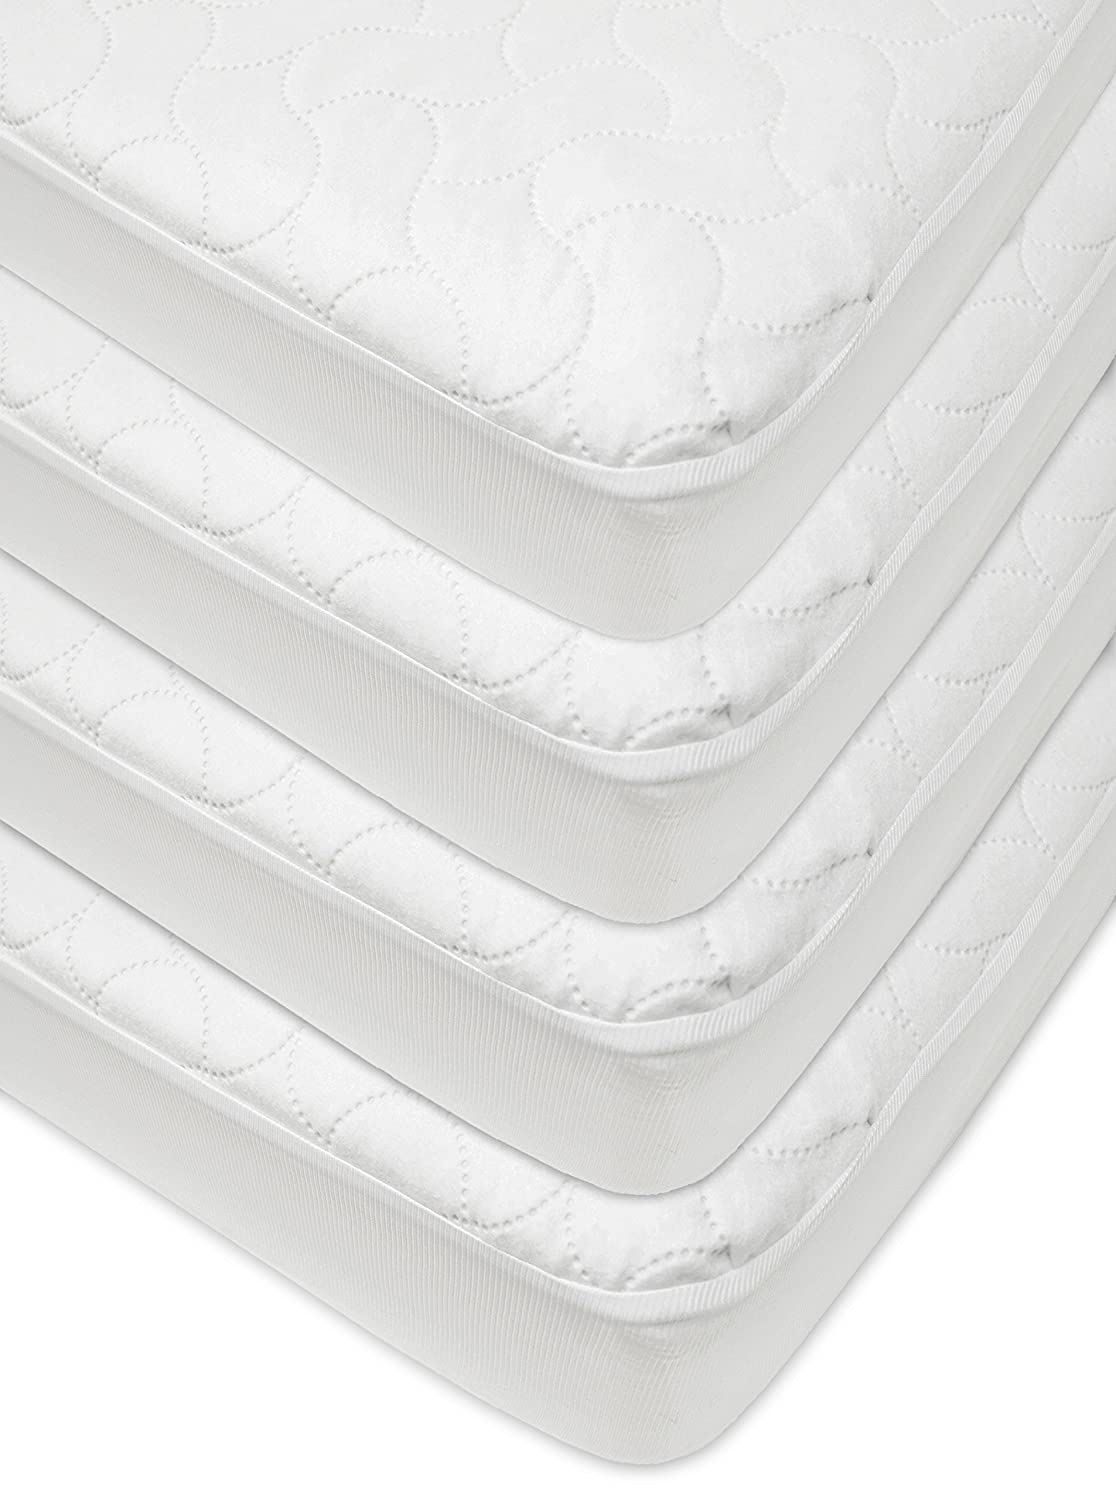 American Baby Waterproof Fitted Quilted Crib and Toddler Protective Pad Cover, White, 4 Piece American Baby Company 42863-WT